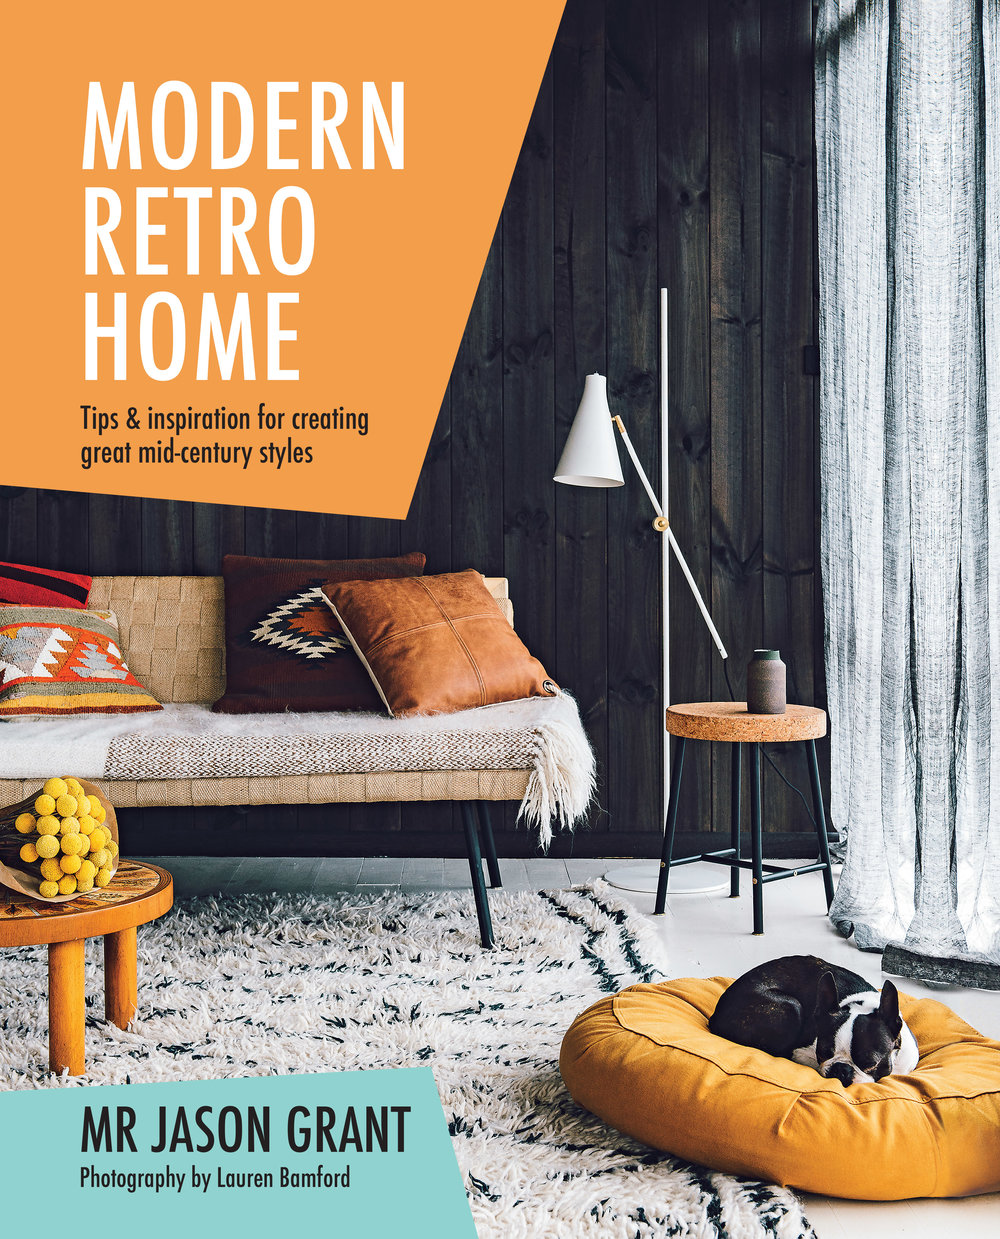 Modern Retro Home Cover 2.jpg